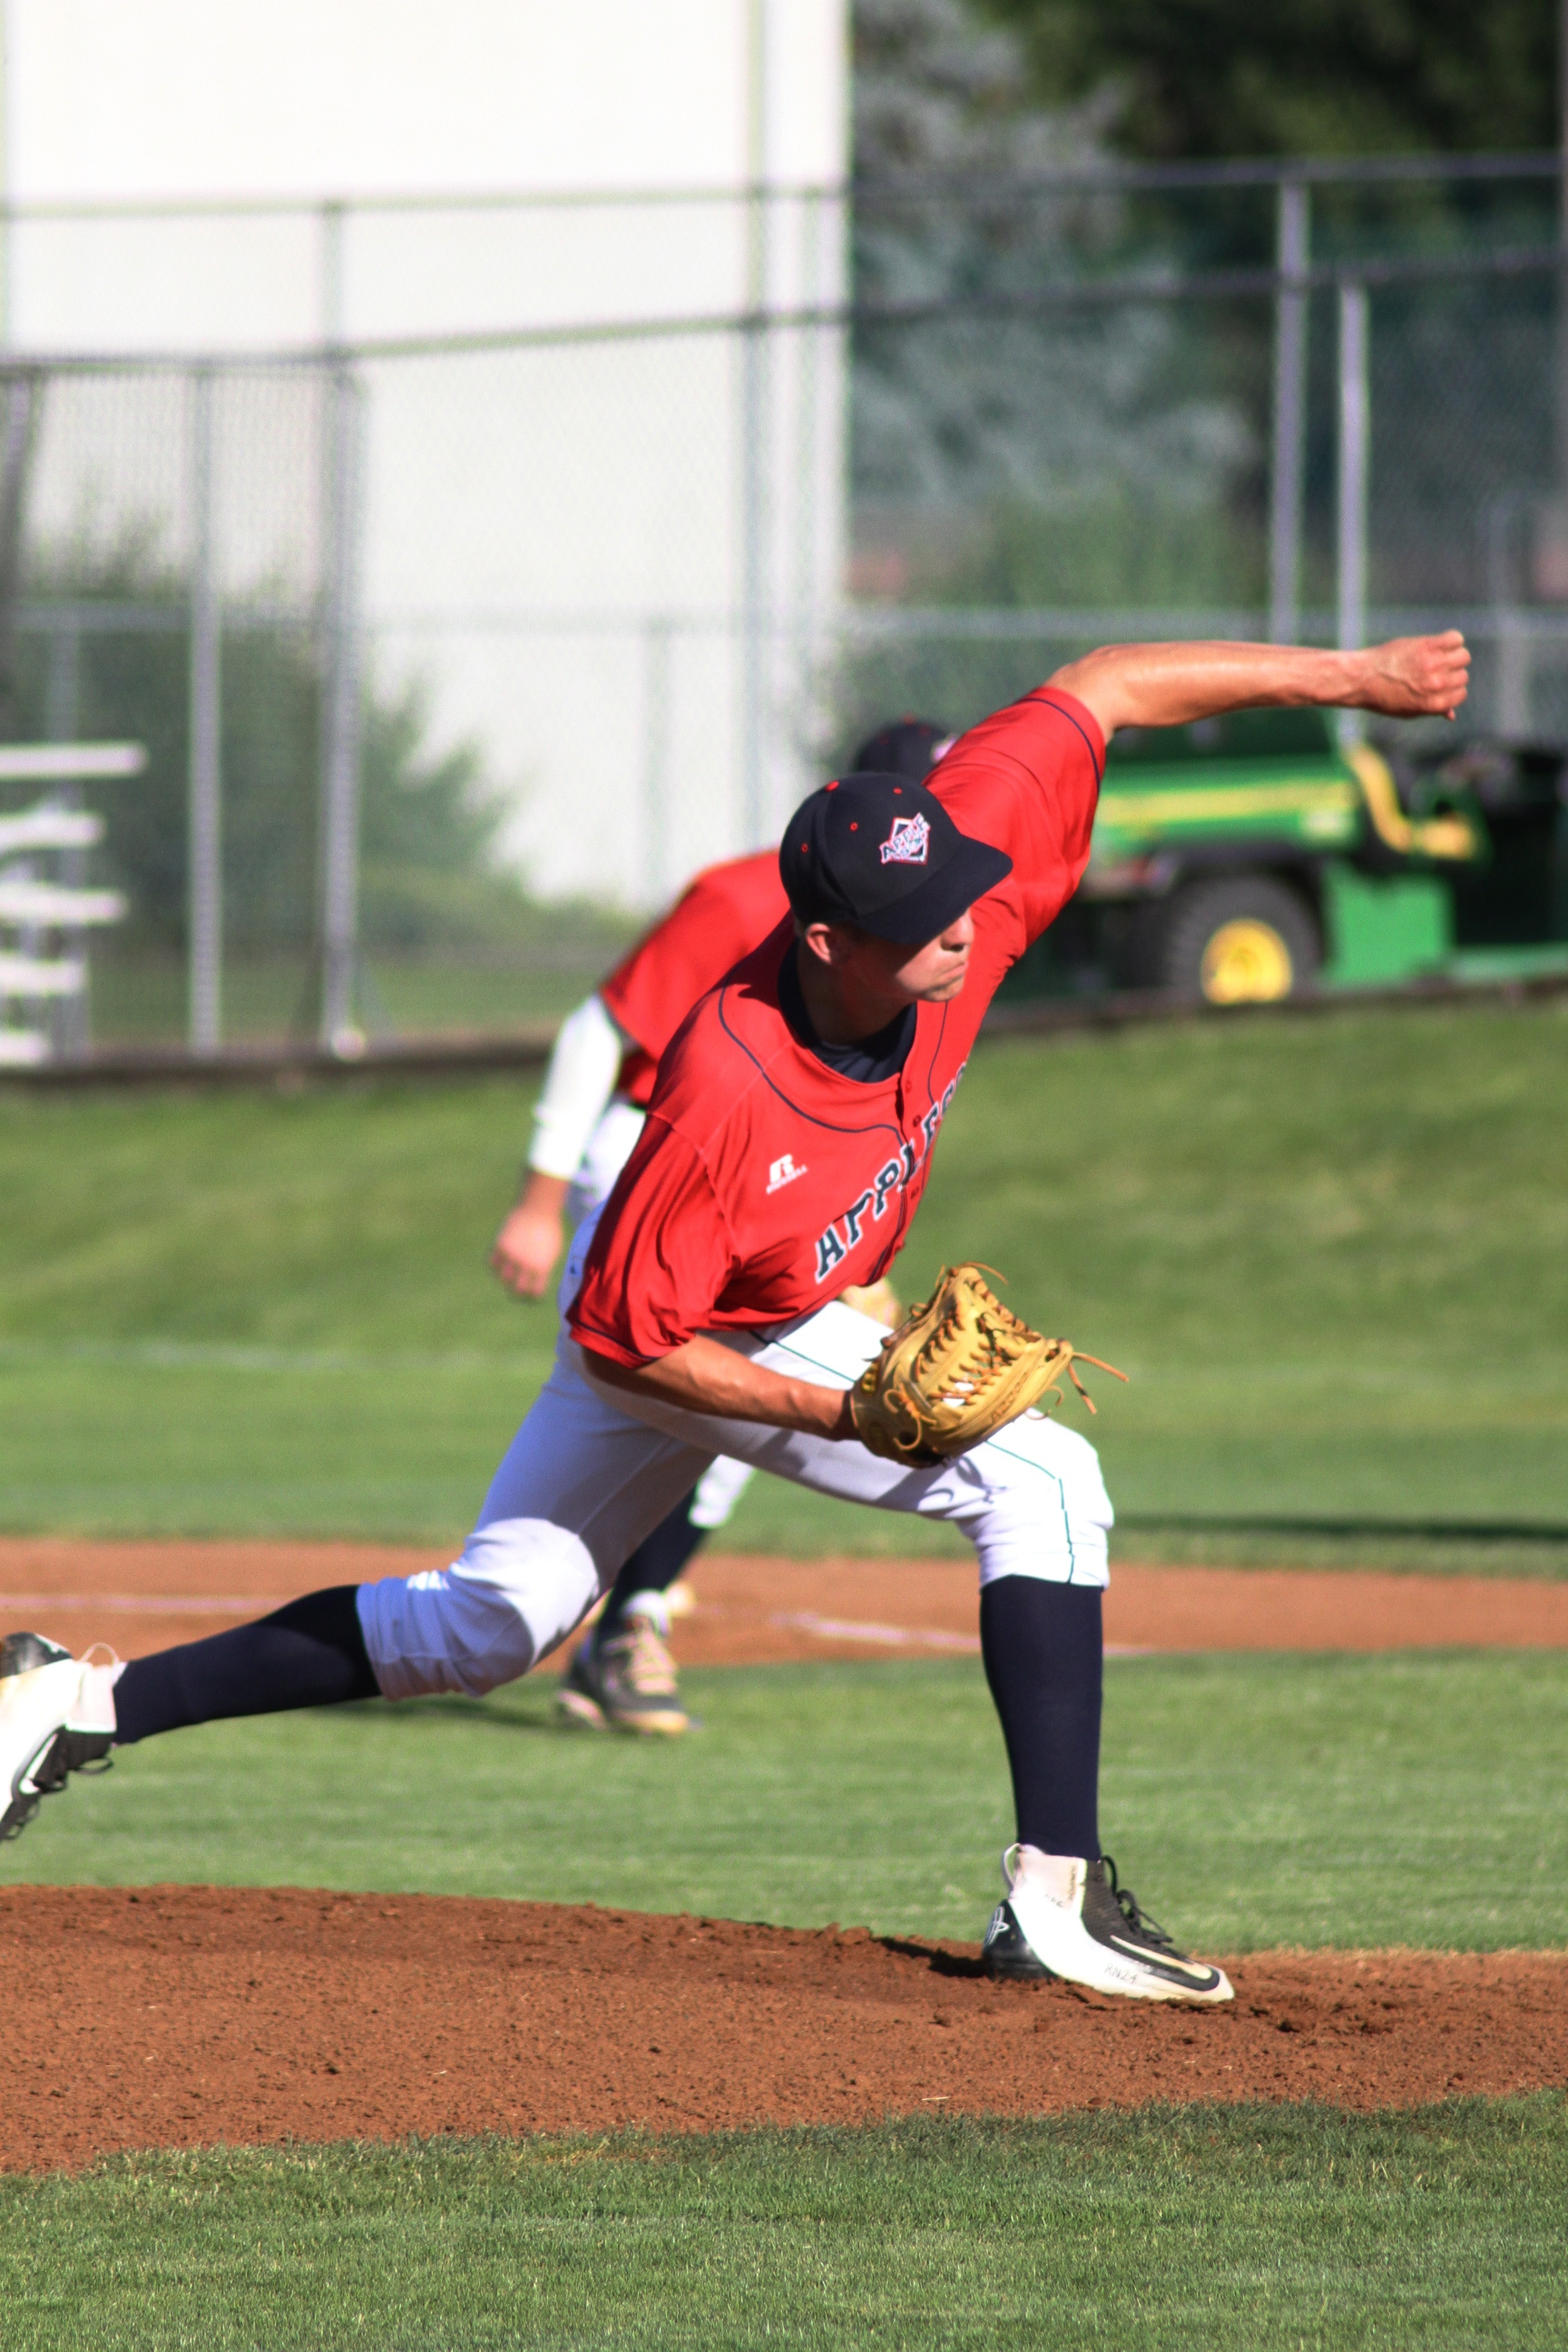 Grady Miller threw seven shutout innings Sunday, as the AppleSox held off a late Corvallis rally to earn a 3-0 win, and take the series at Paul Thomas Sr. Stadium.